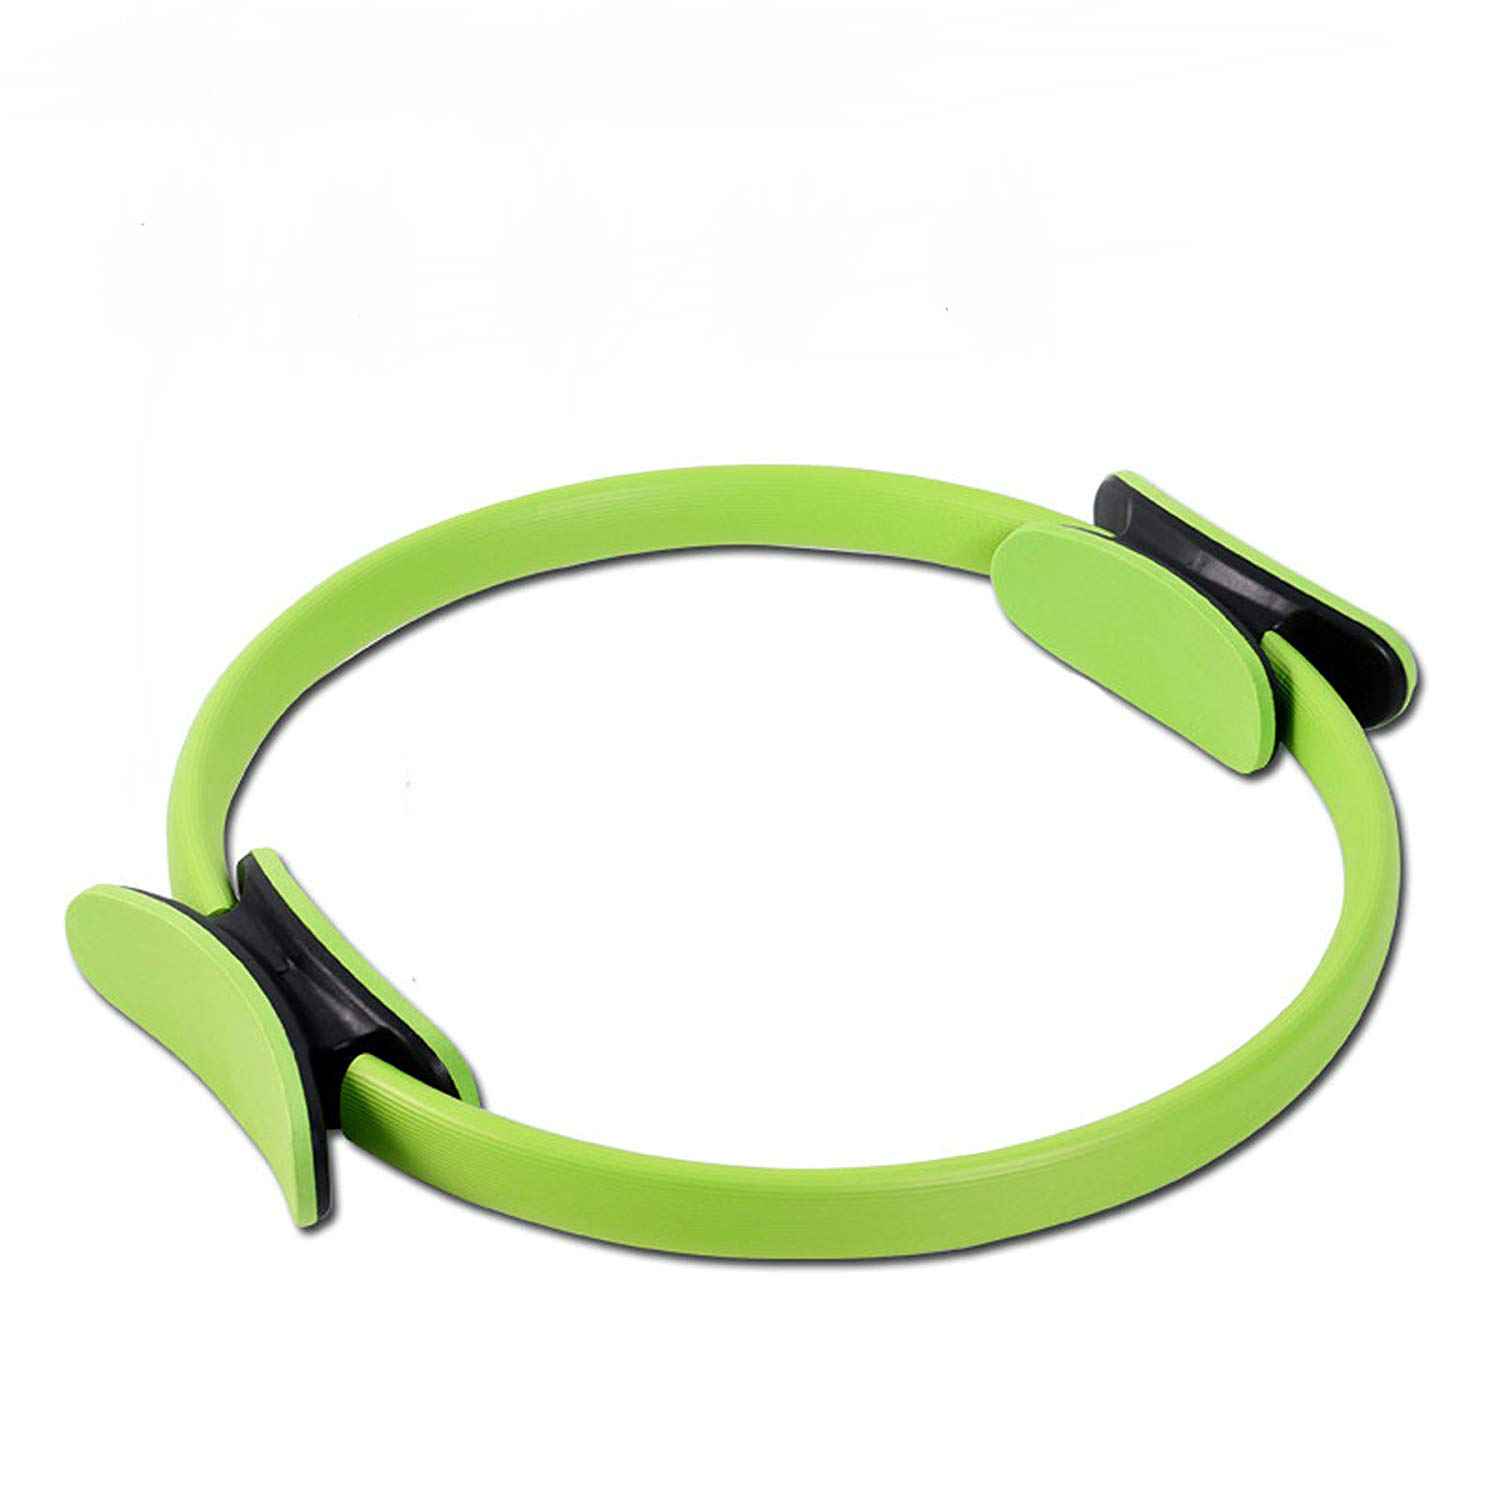 15 inch Pilates Ring Help Tone and Strengthen Your Entire core and Body Green